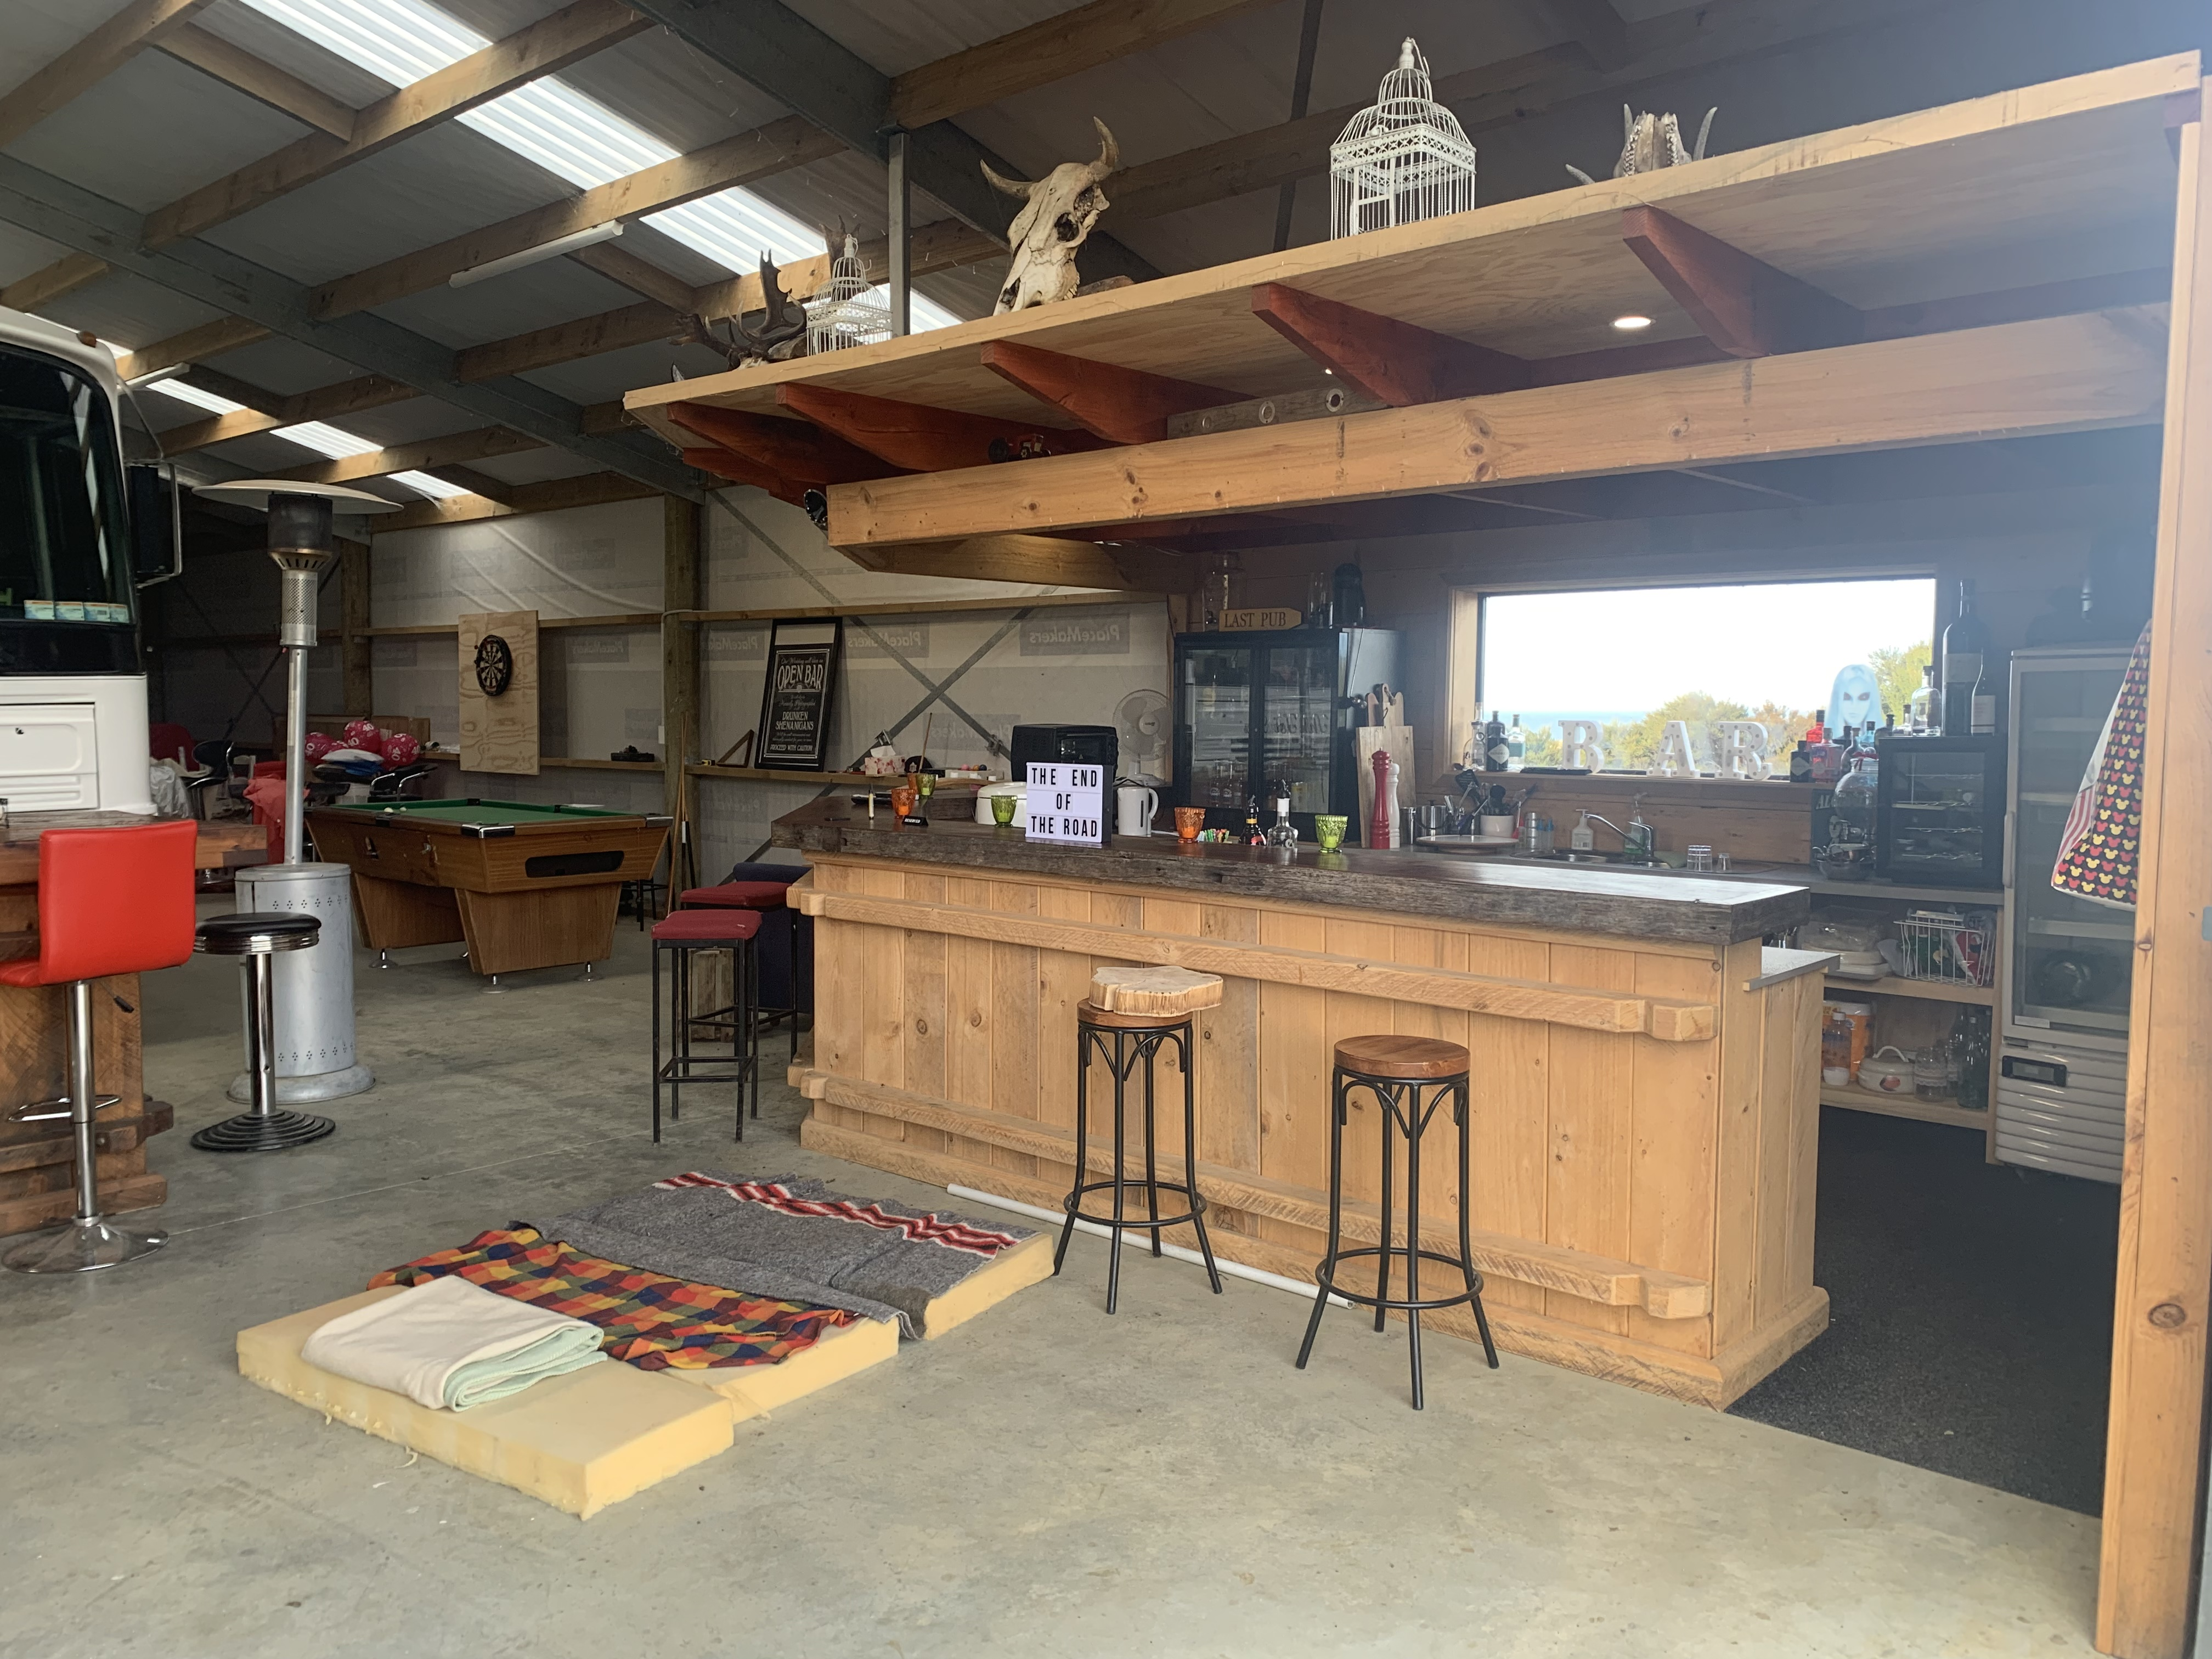 Hobby shed for spending time in